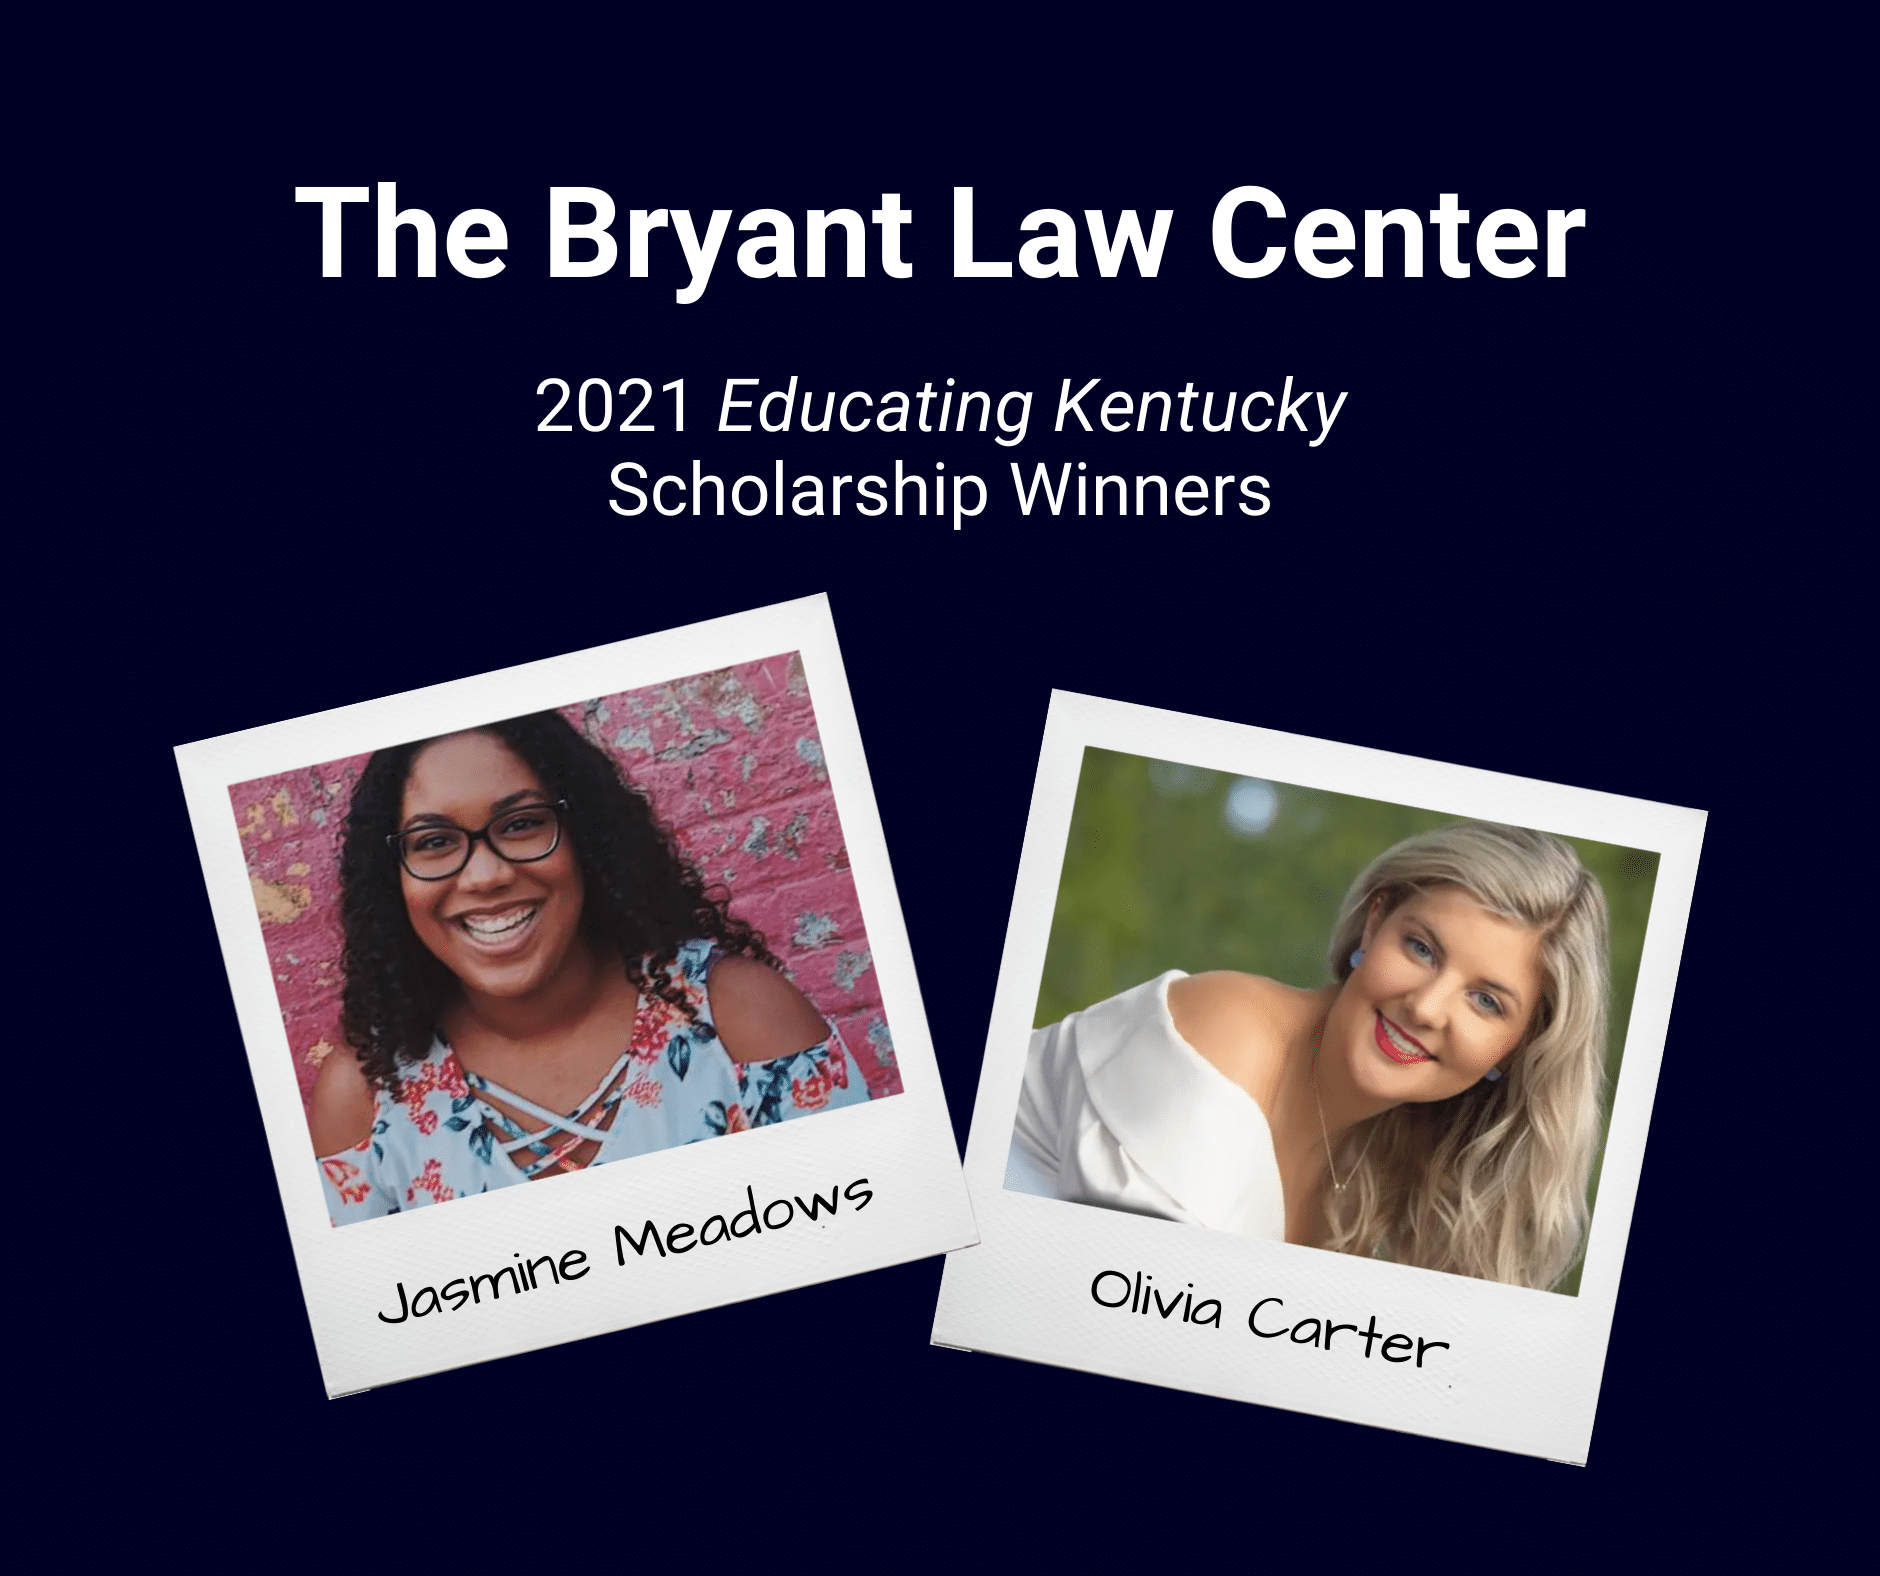 Winners of The Bryant Law Center 2021 Educating Kentucky Scholarship, Jasmine Meadows and Olivia Carter